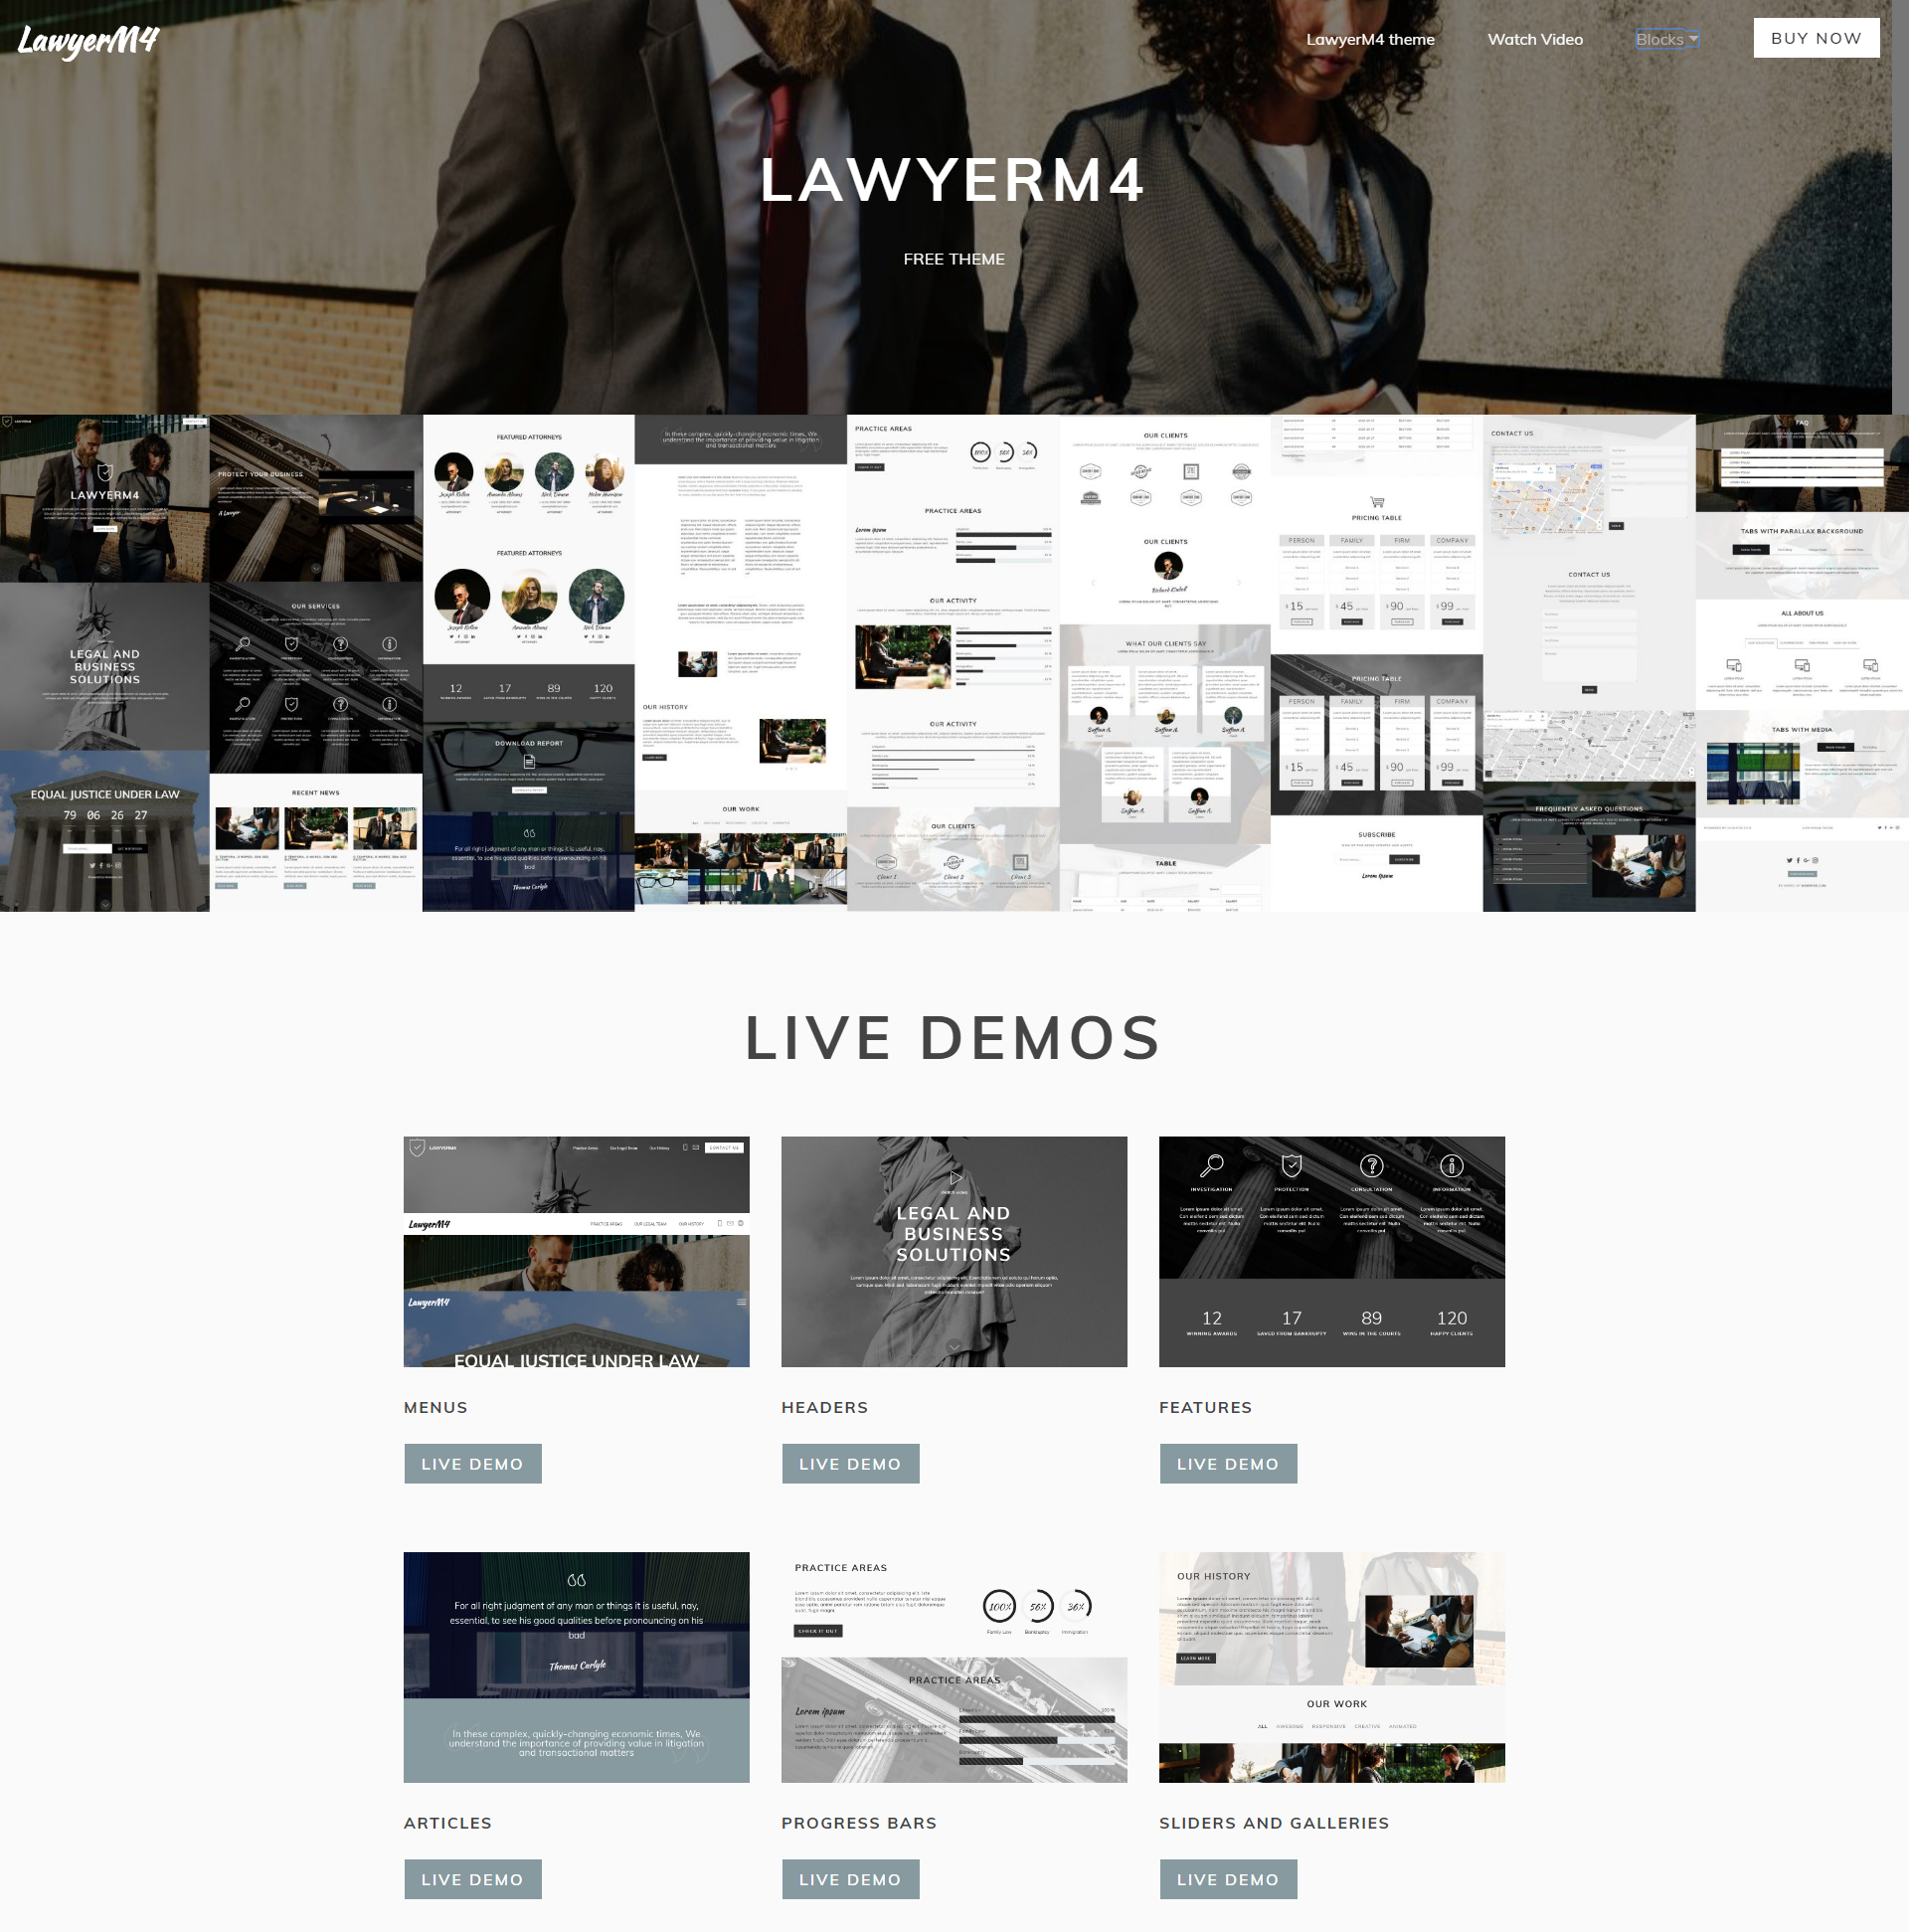 HTML Bootstrap LawyerM4 Templates